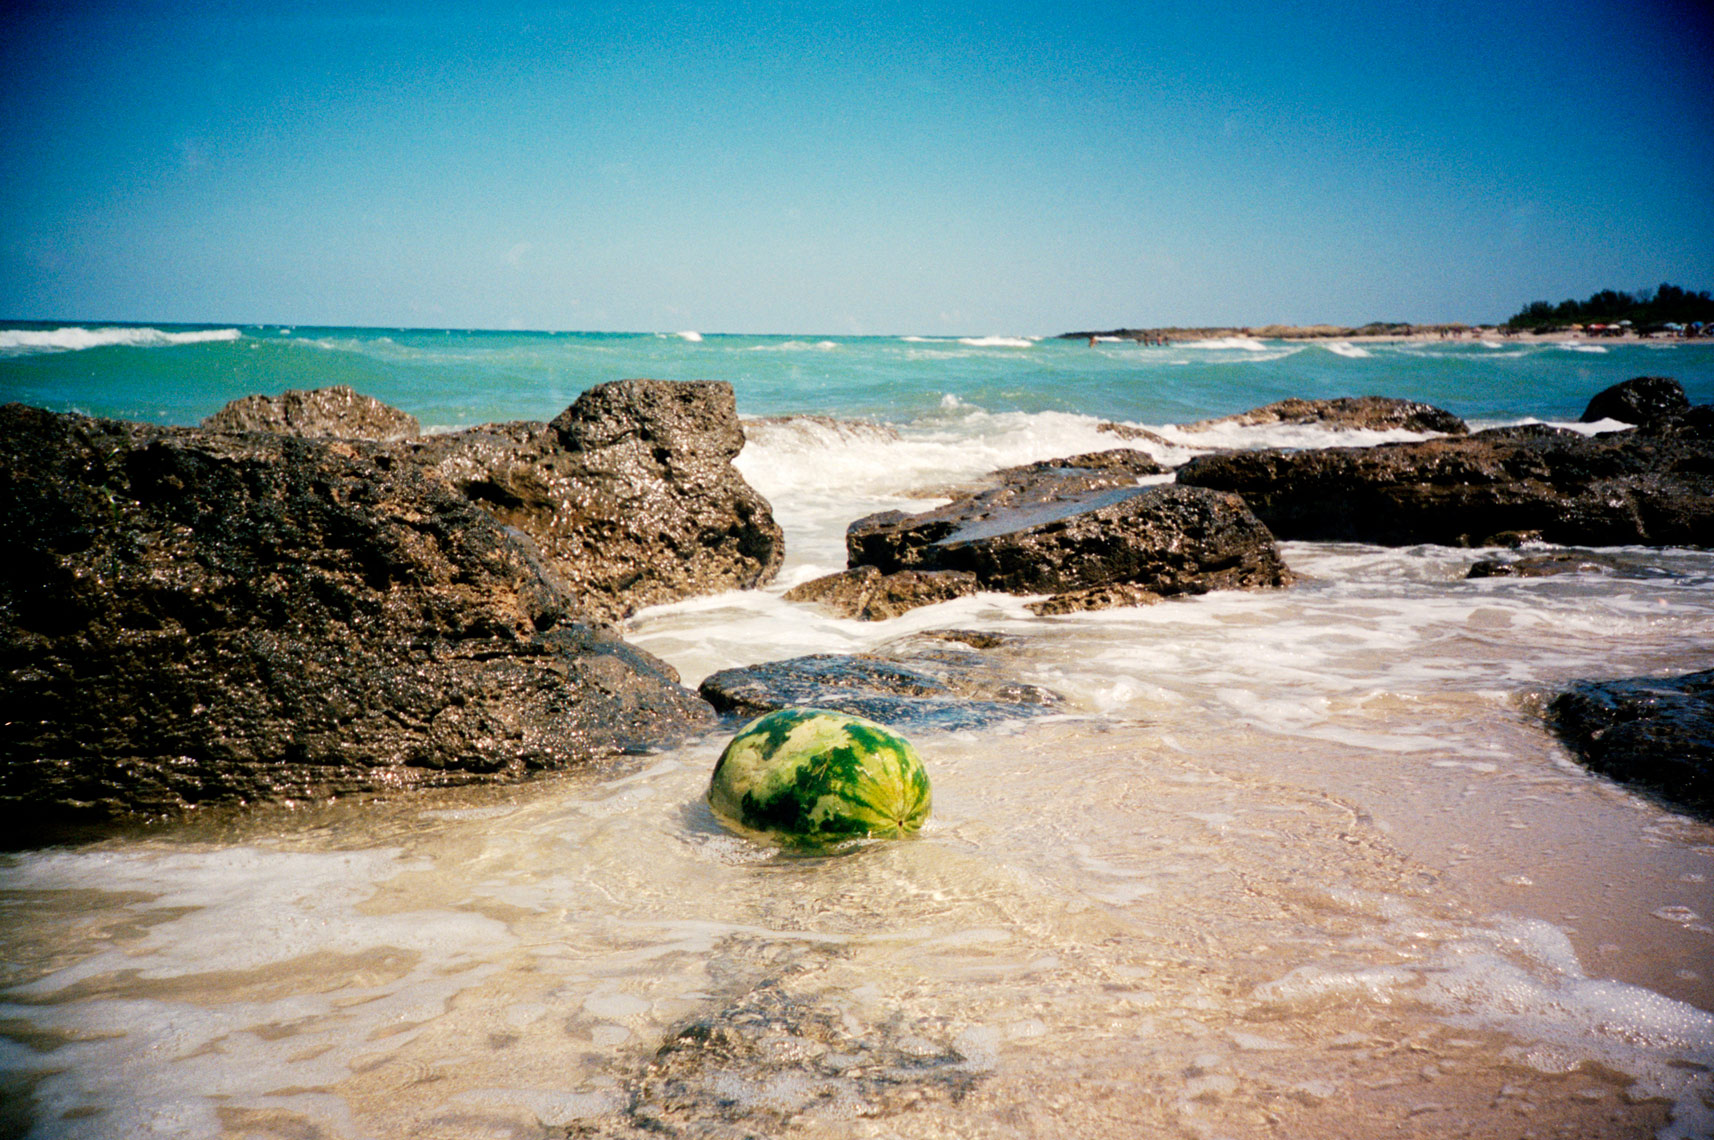 watermelon Adriatic Coast Italy, Webb Chappell